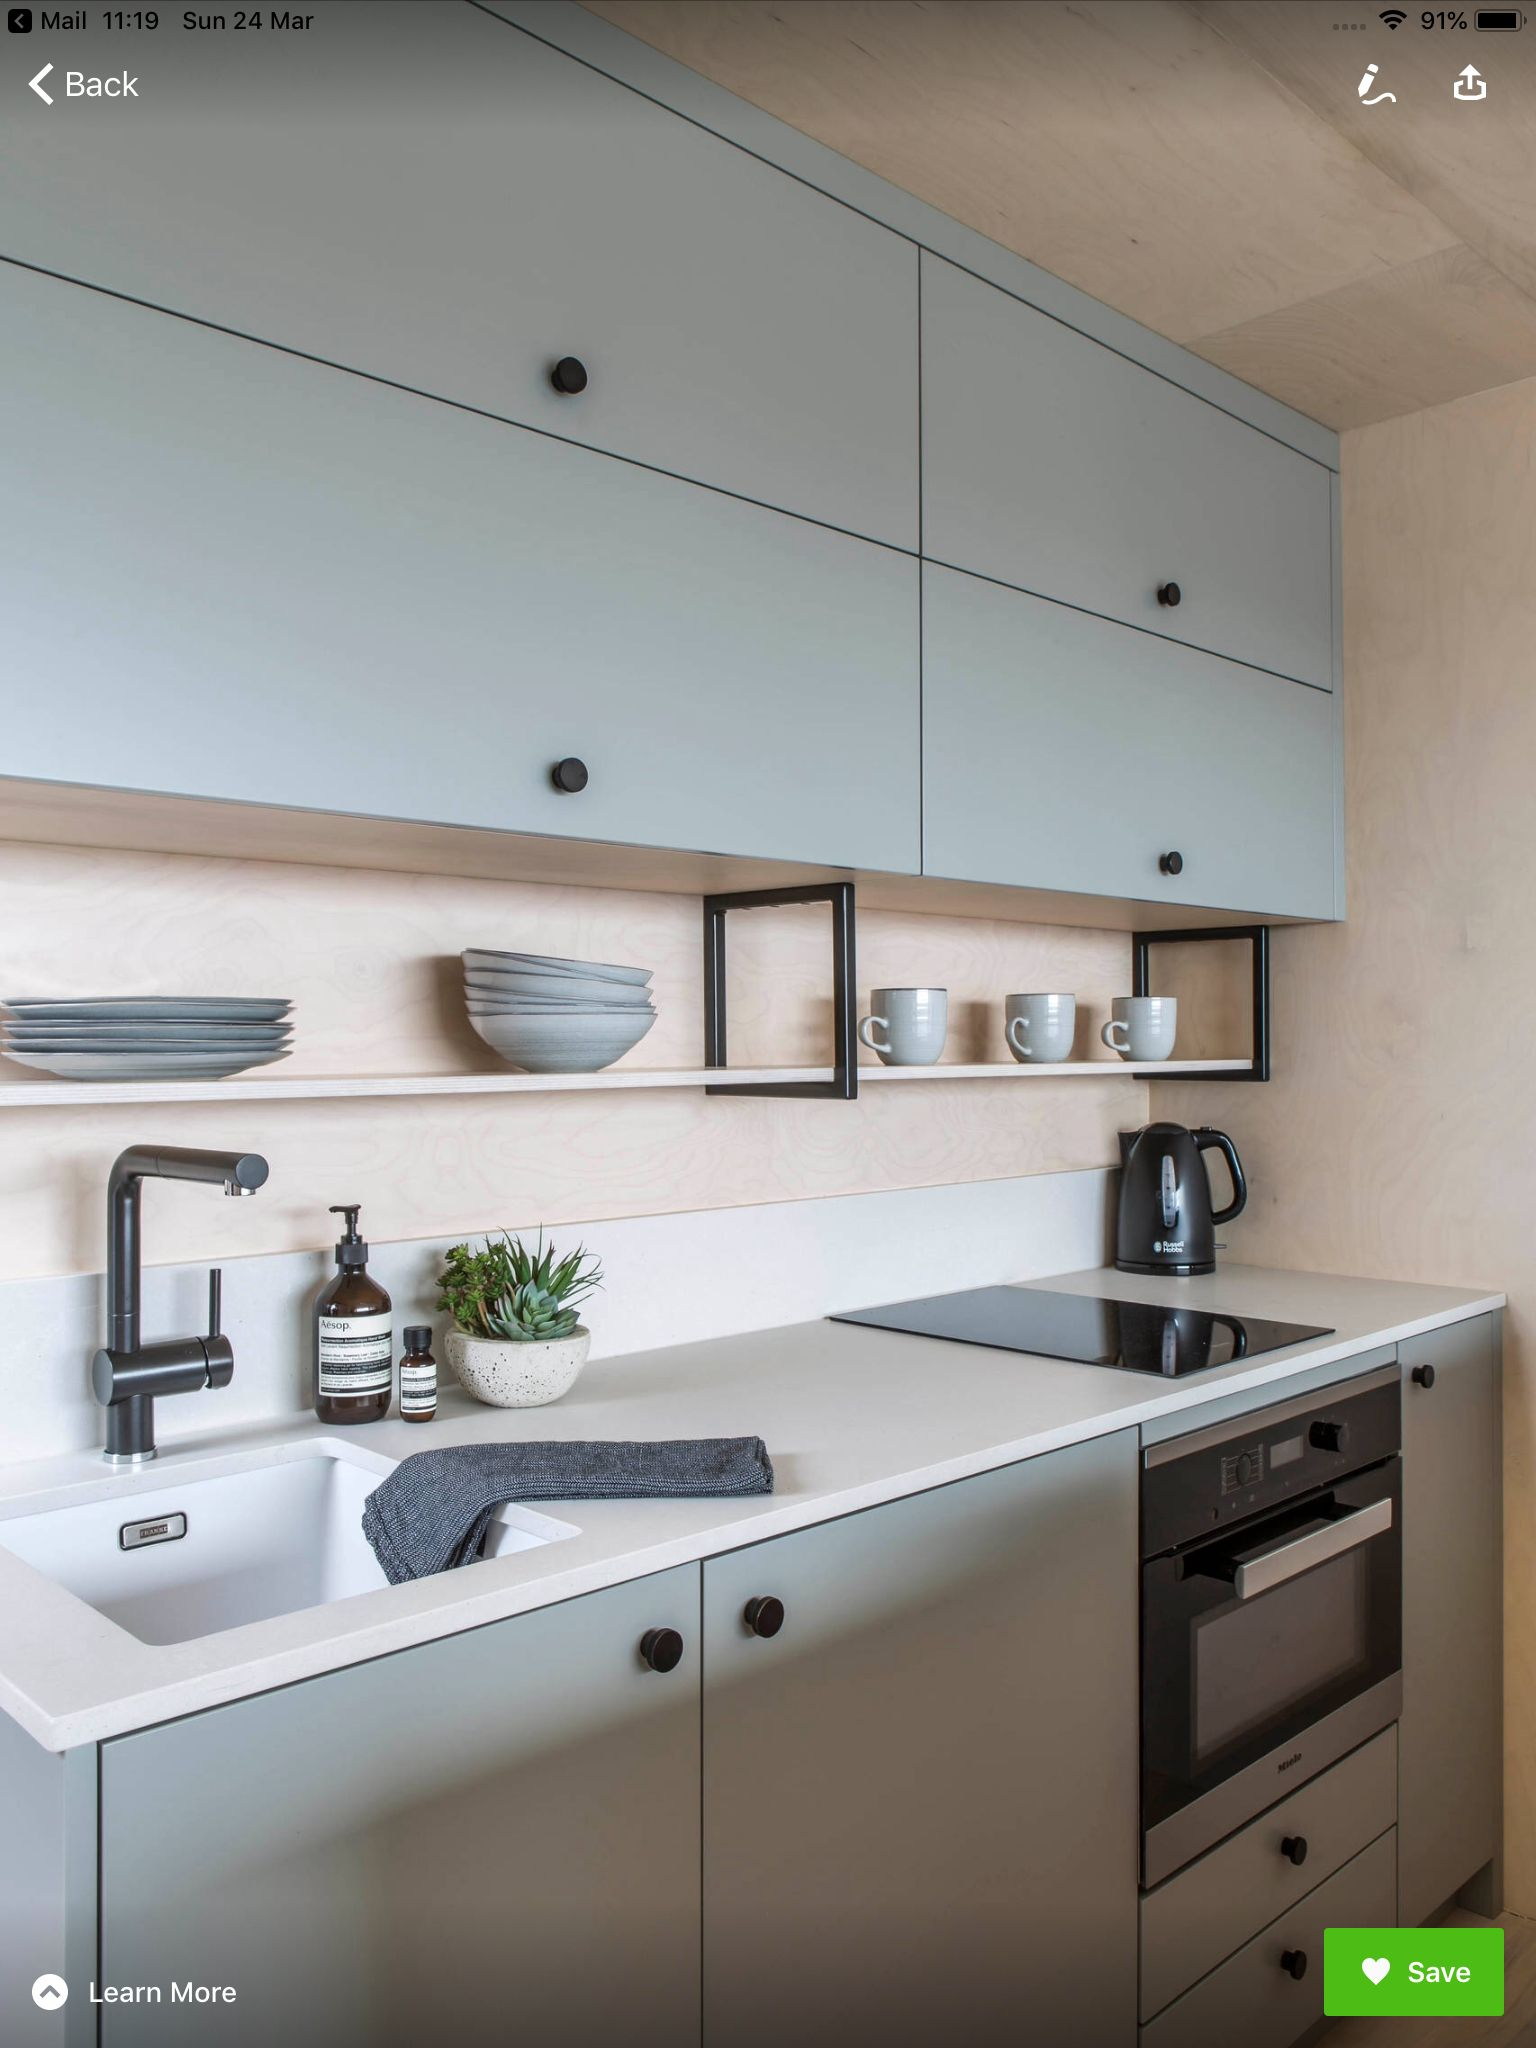 Pin by Wendy Payne on Kitchens Small space kitchen